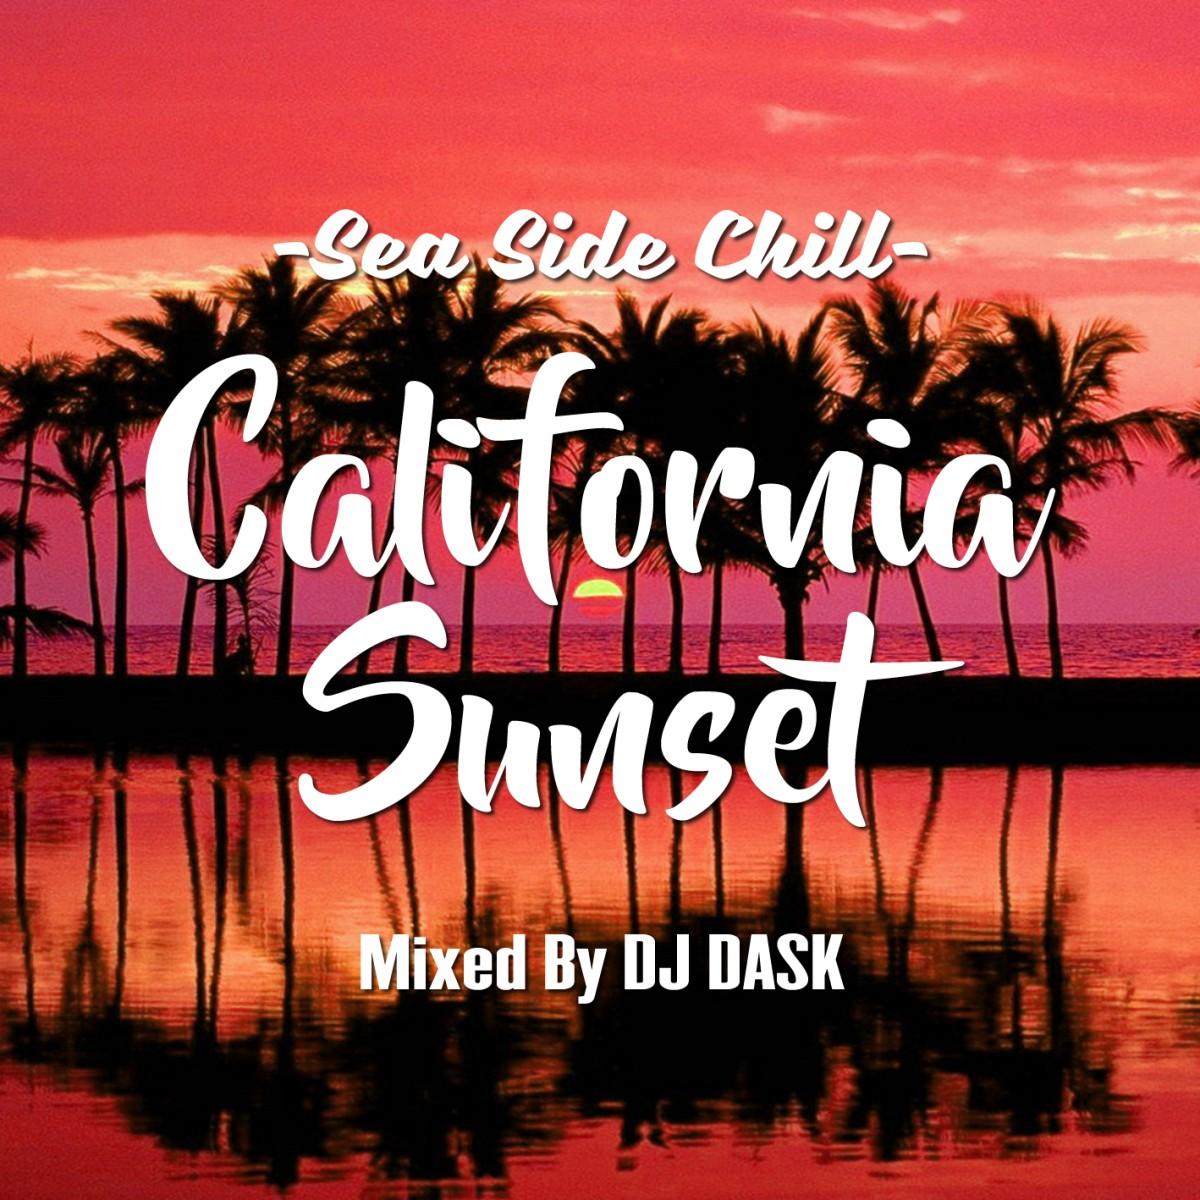 チルやベッドサイドにピッタリ!【洋楽CD・MixCD】California Sunset -Sea Side Chill- / DJ Dask【M便 2/12】